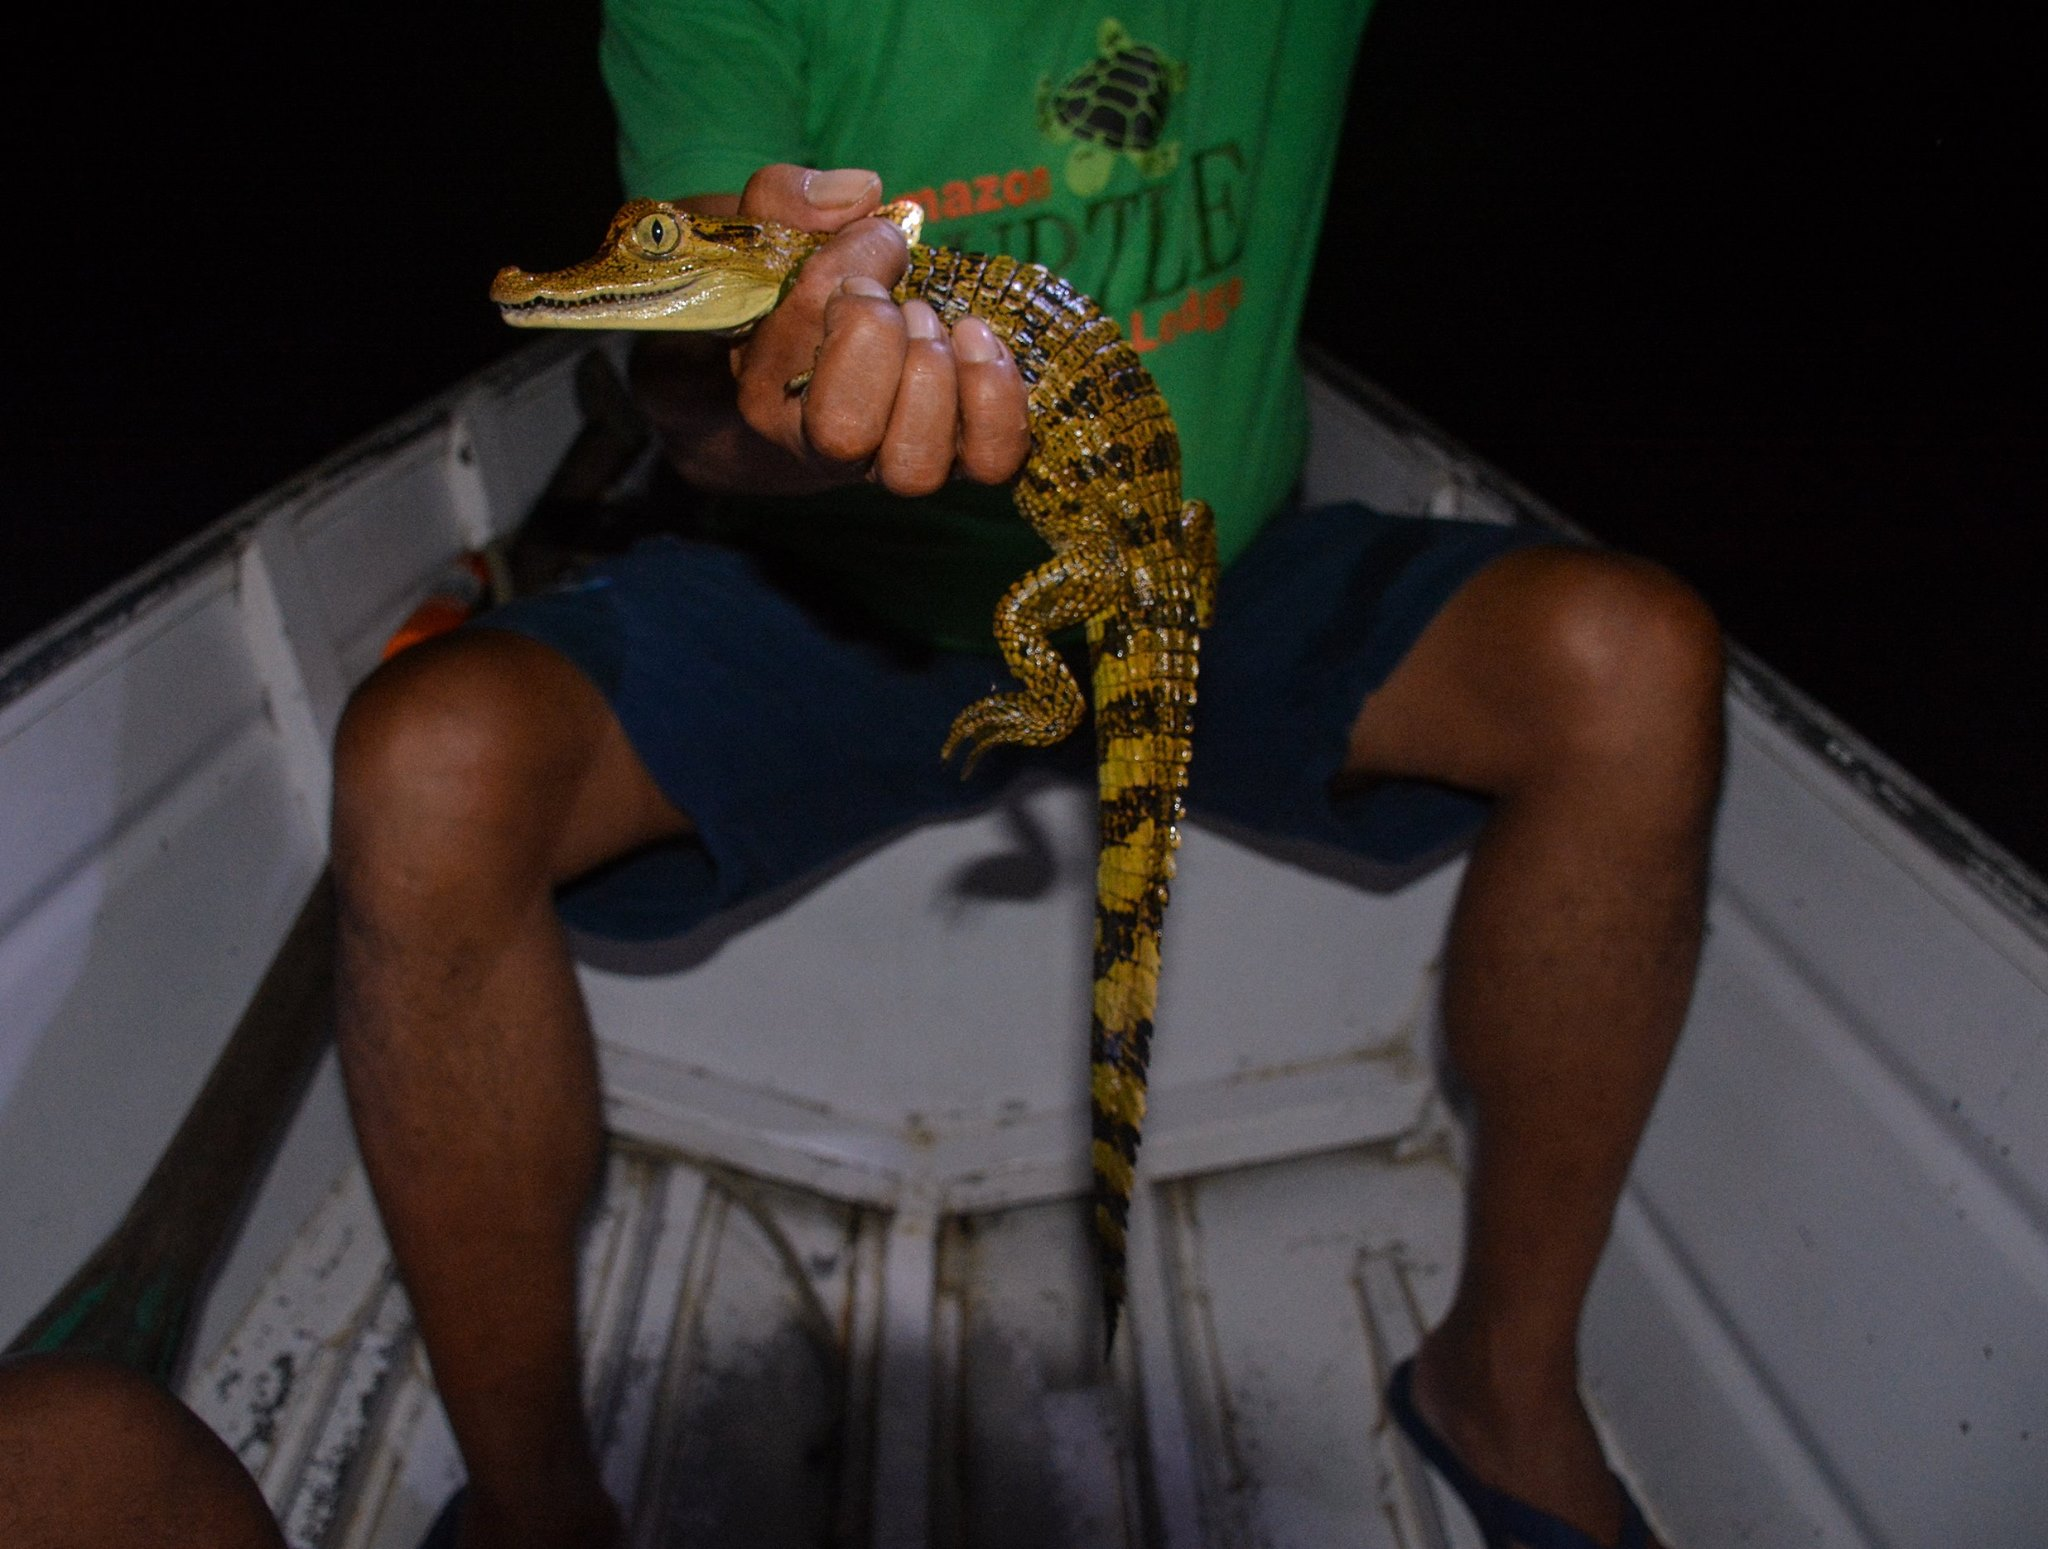 Posing with a baby caiman, a kind of alligator